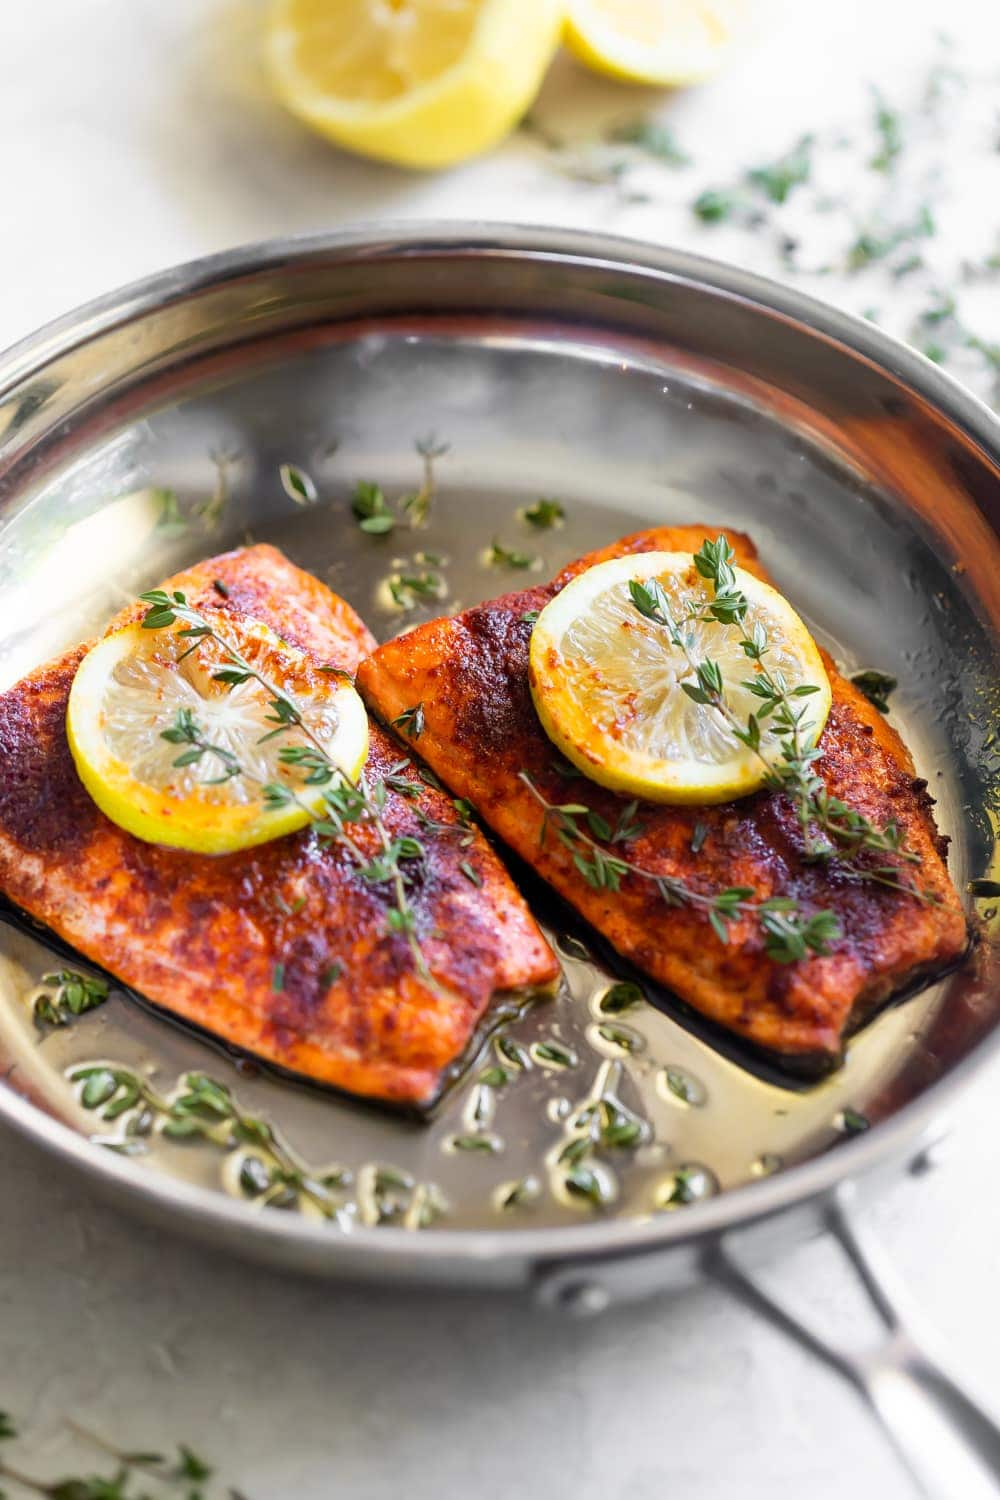 pan seared salmon on skillet with lemon slices